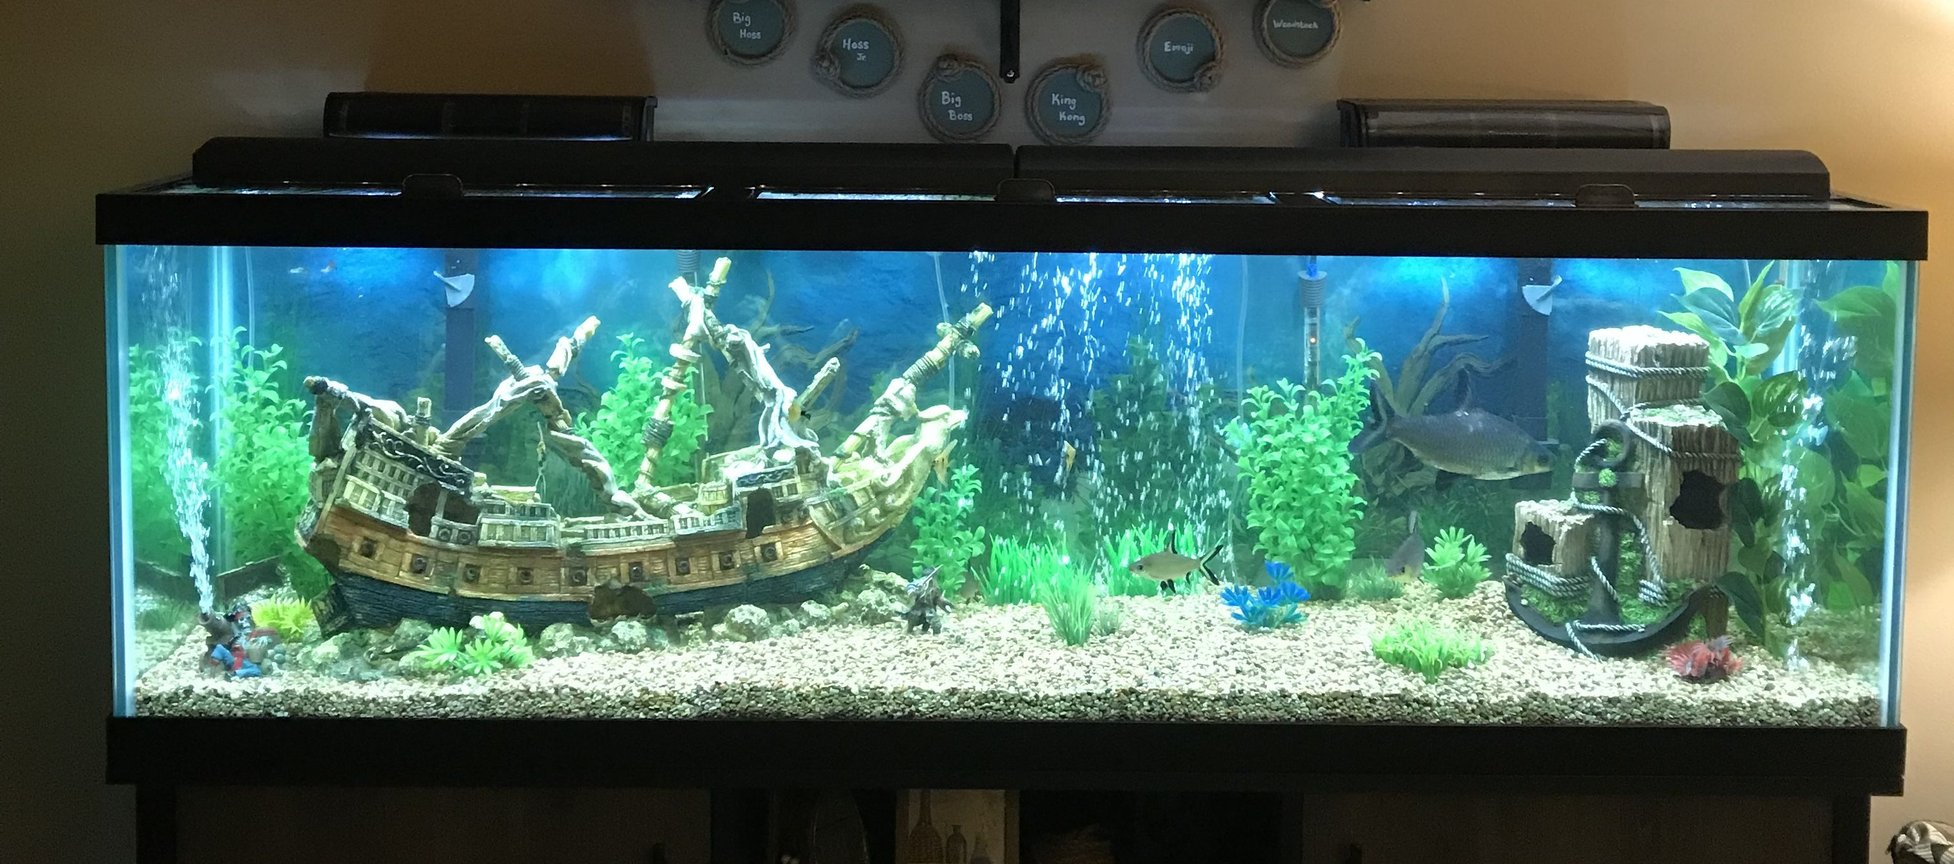 125 gallons freshwater fish tank (mostly fish and non-living decorations) - Beware of Sharks